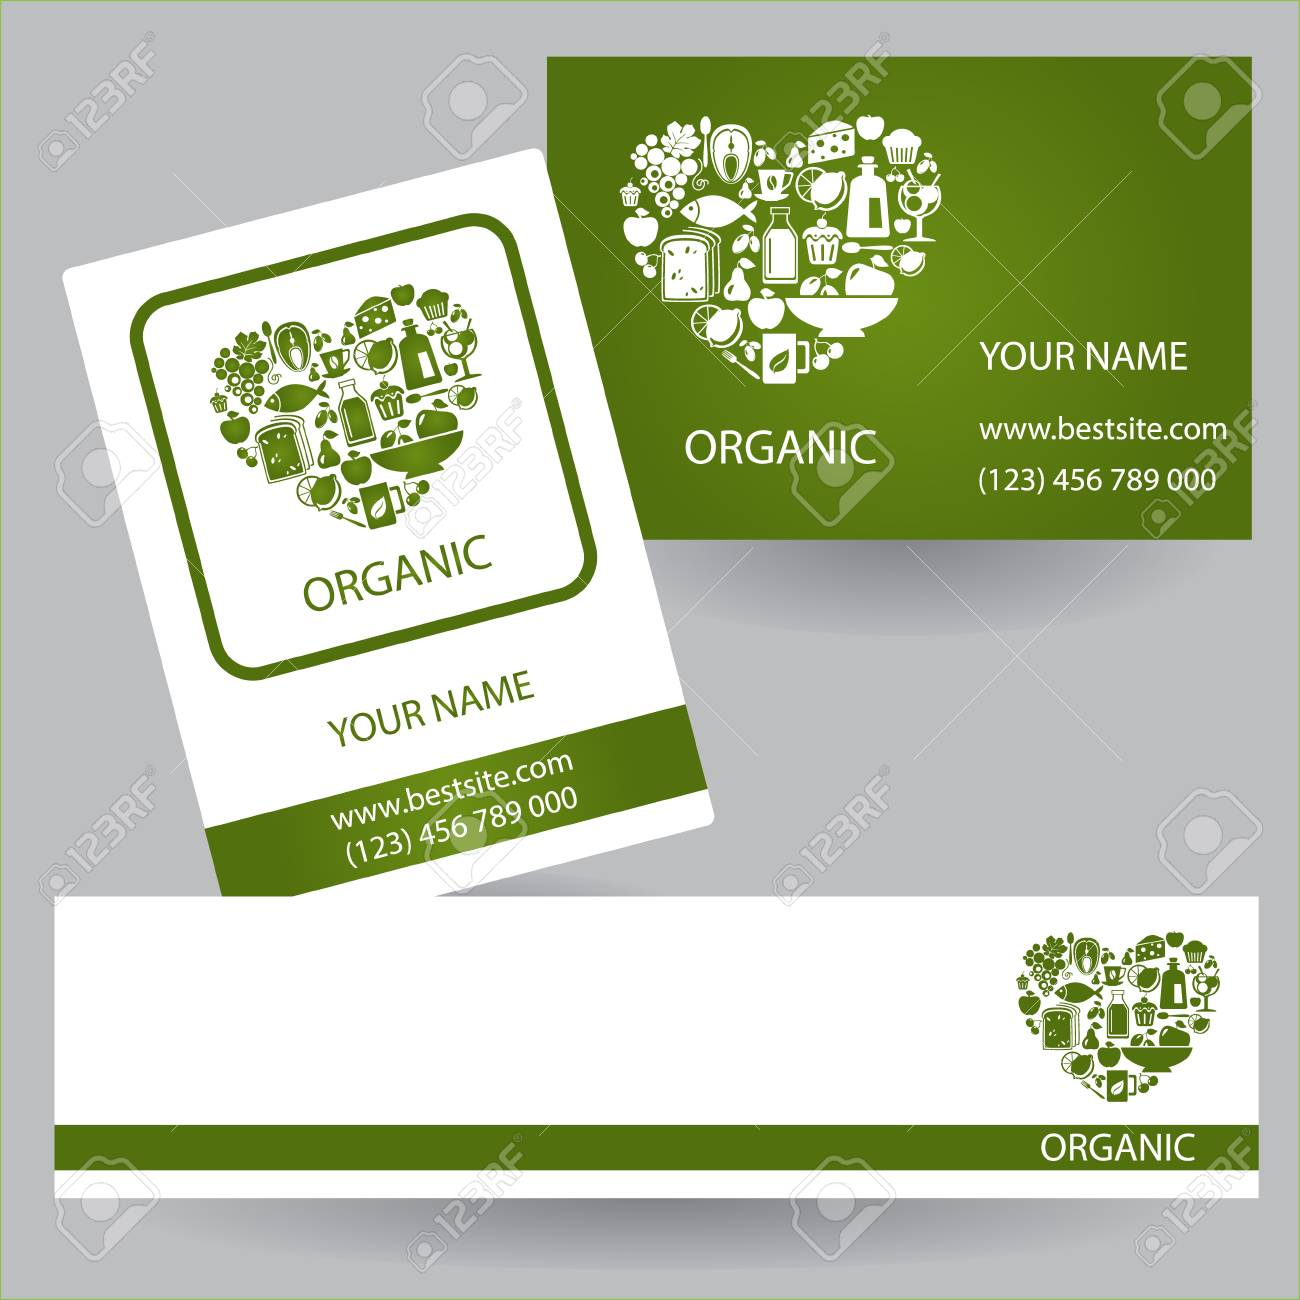 business card organic business card organic concept business